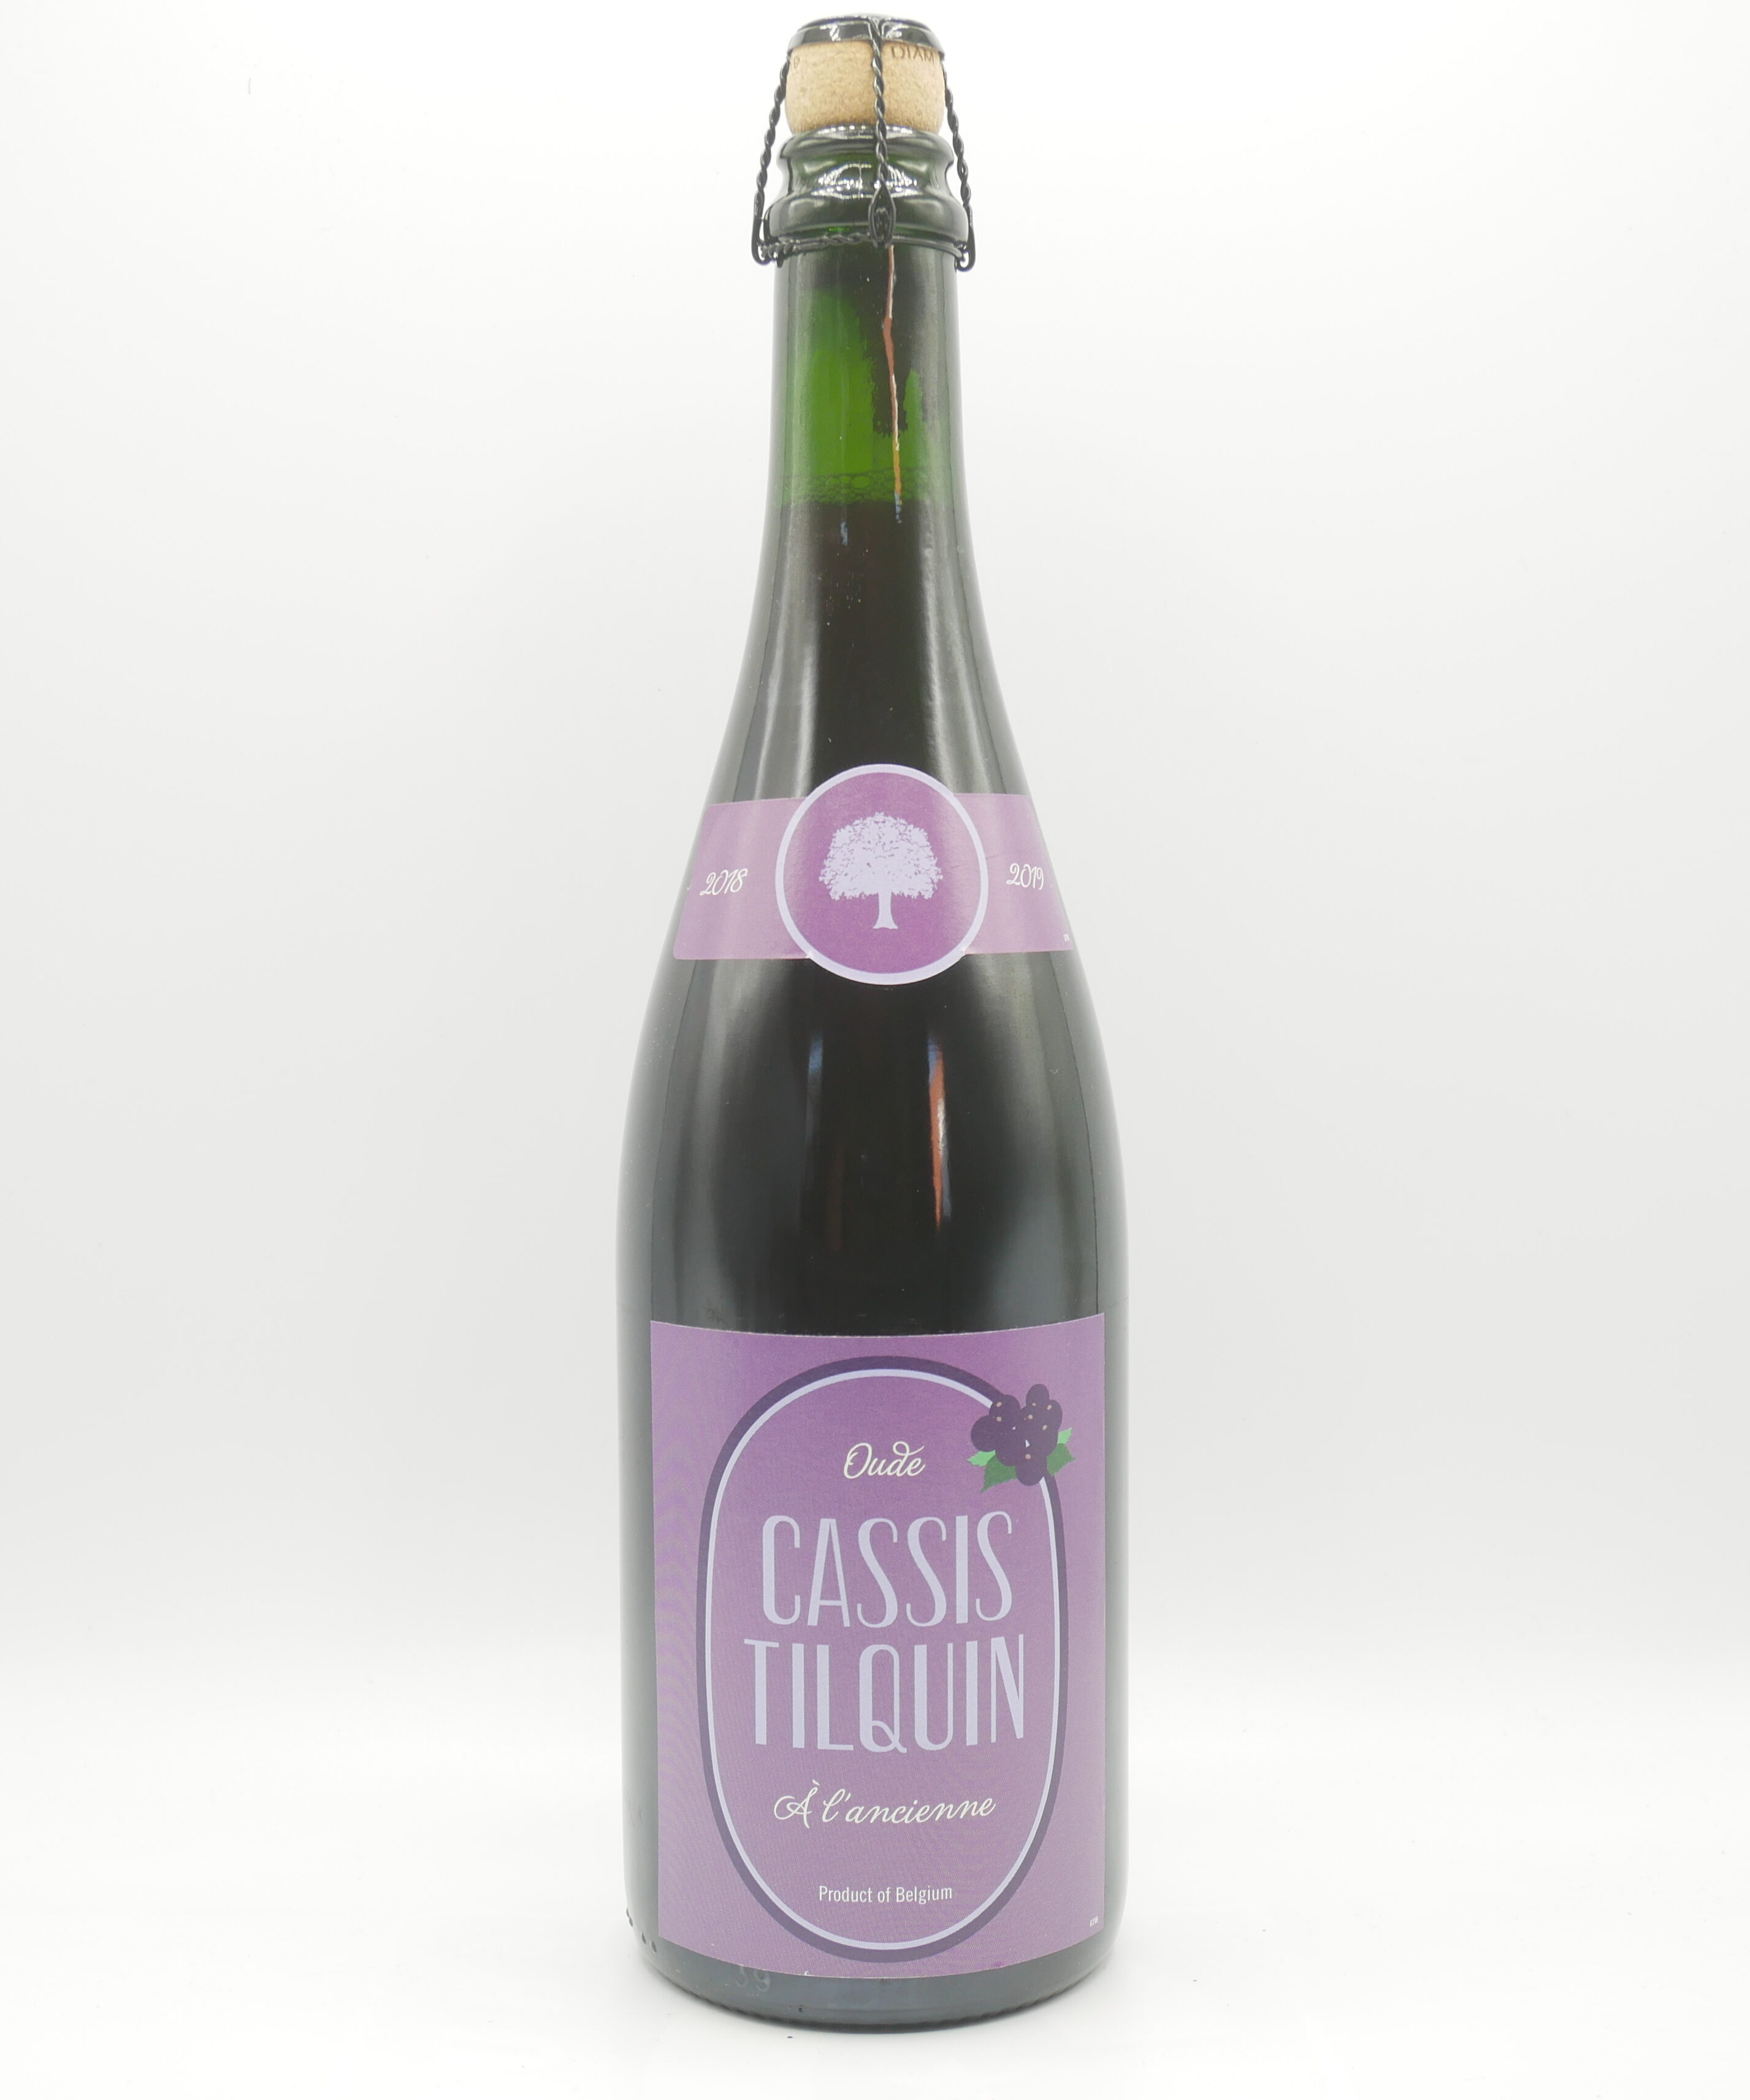 Img Tilquin Cassis